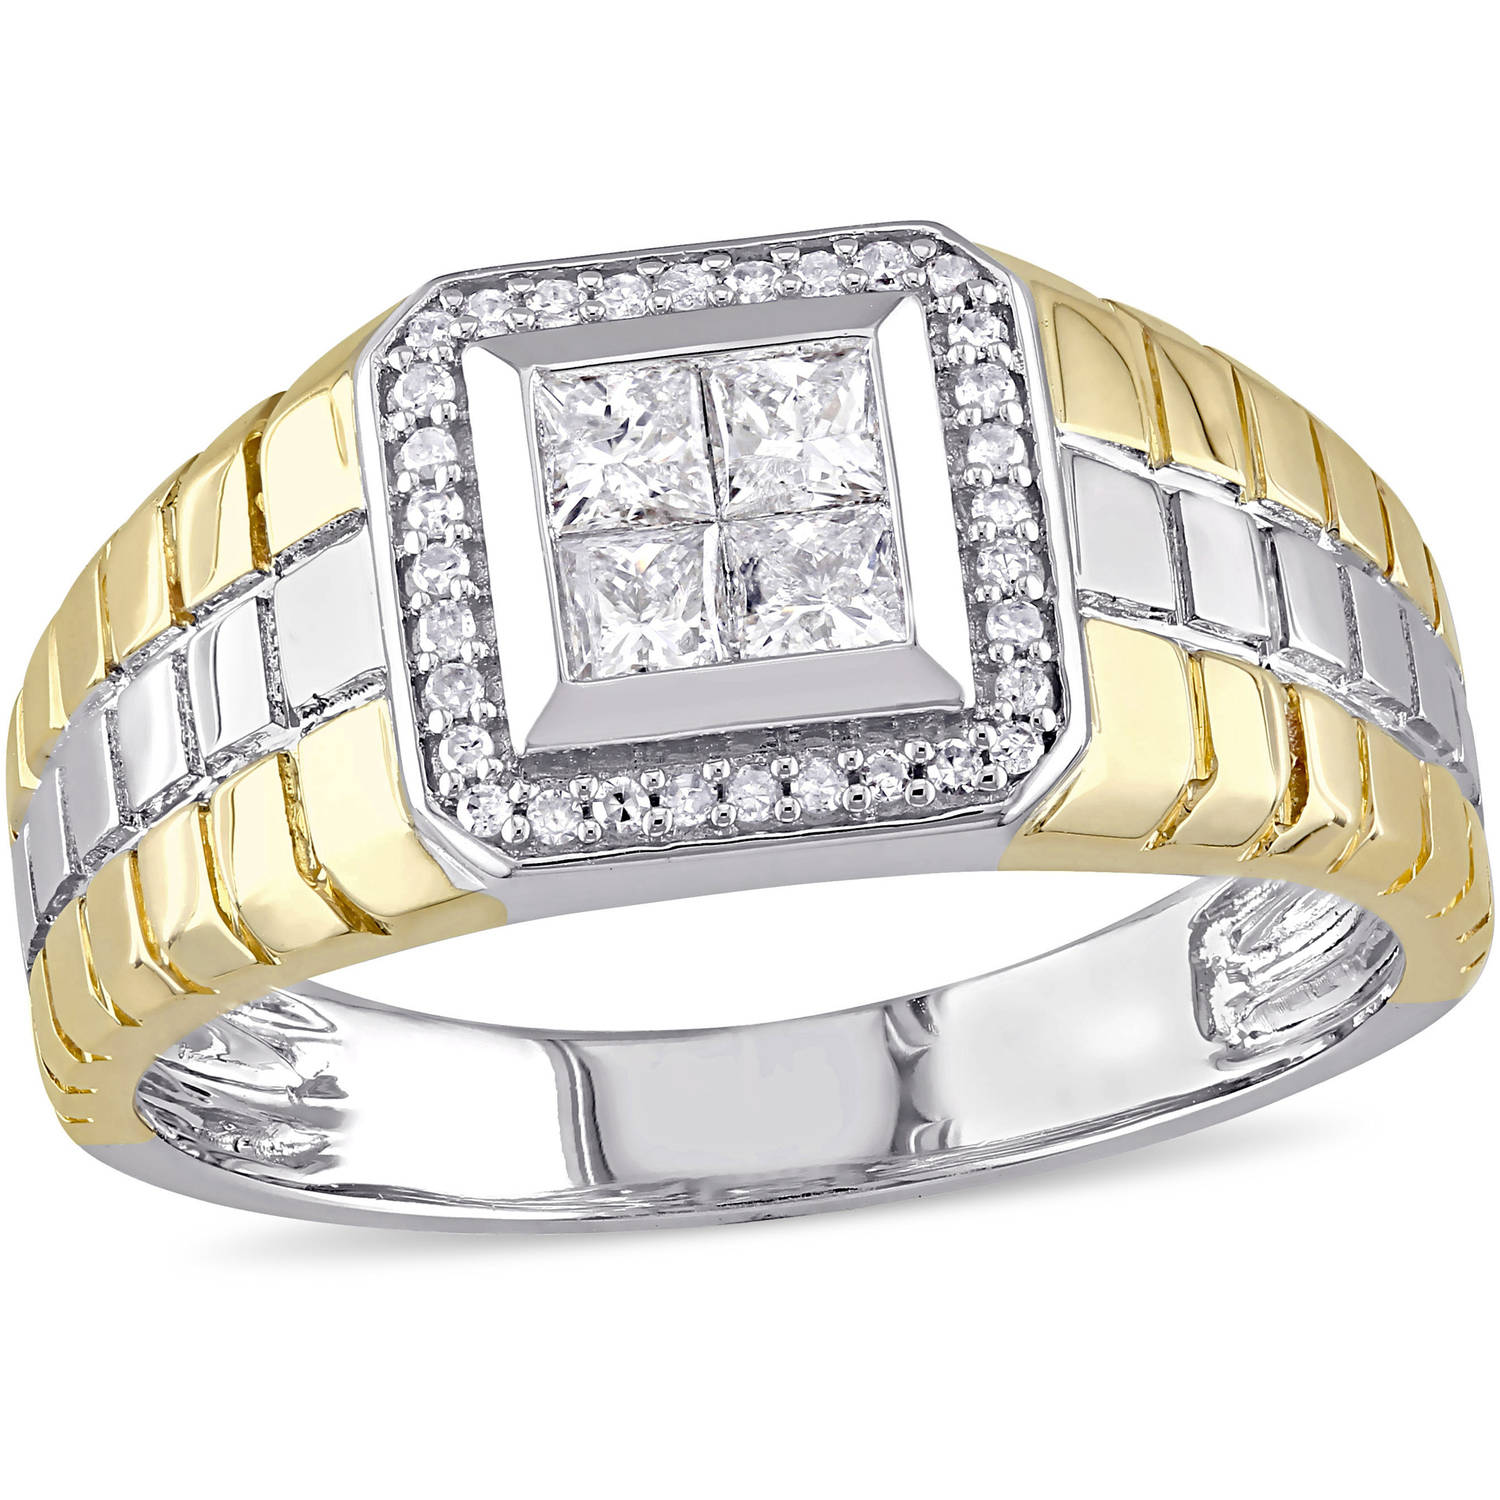 Miabella 1/2 Carat T.W. Princess and Round-Cut Diamond 10kt Two-Tone Gold Men's Ring